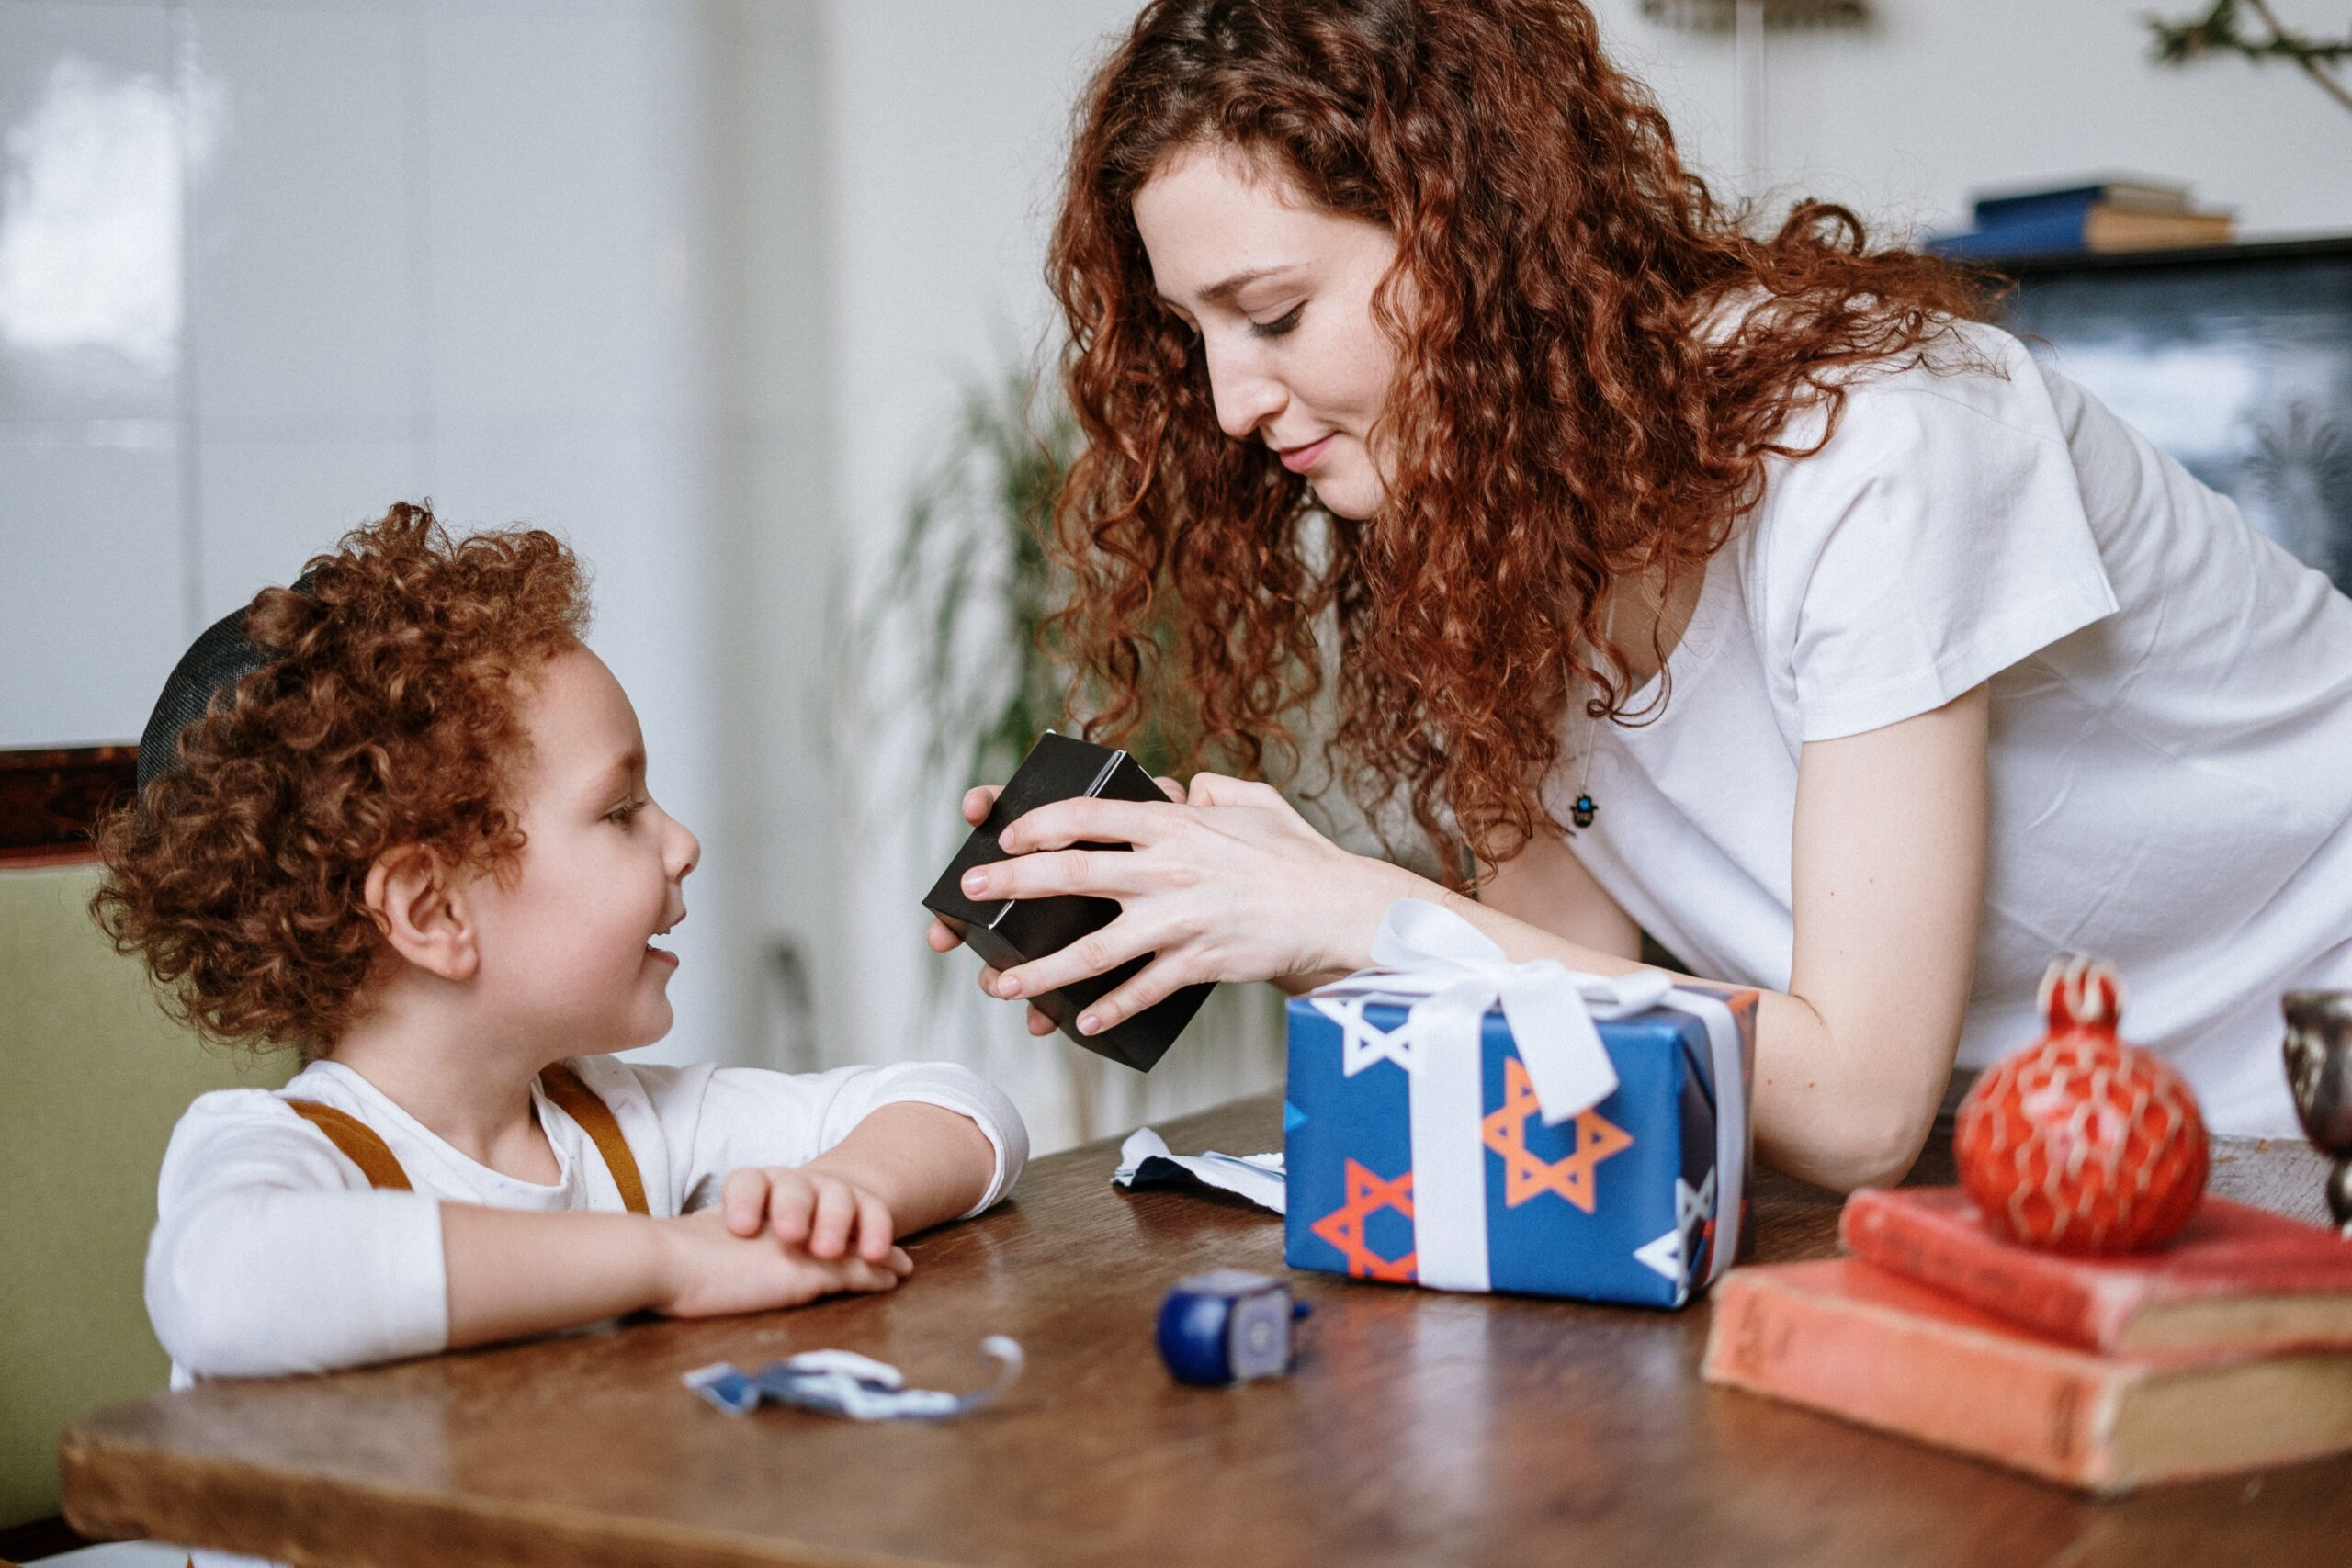 The underestimated power of gifting in relationships